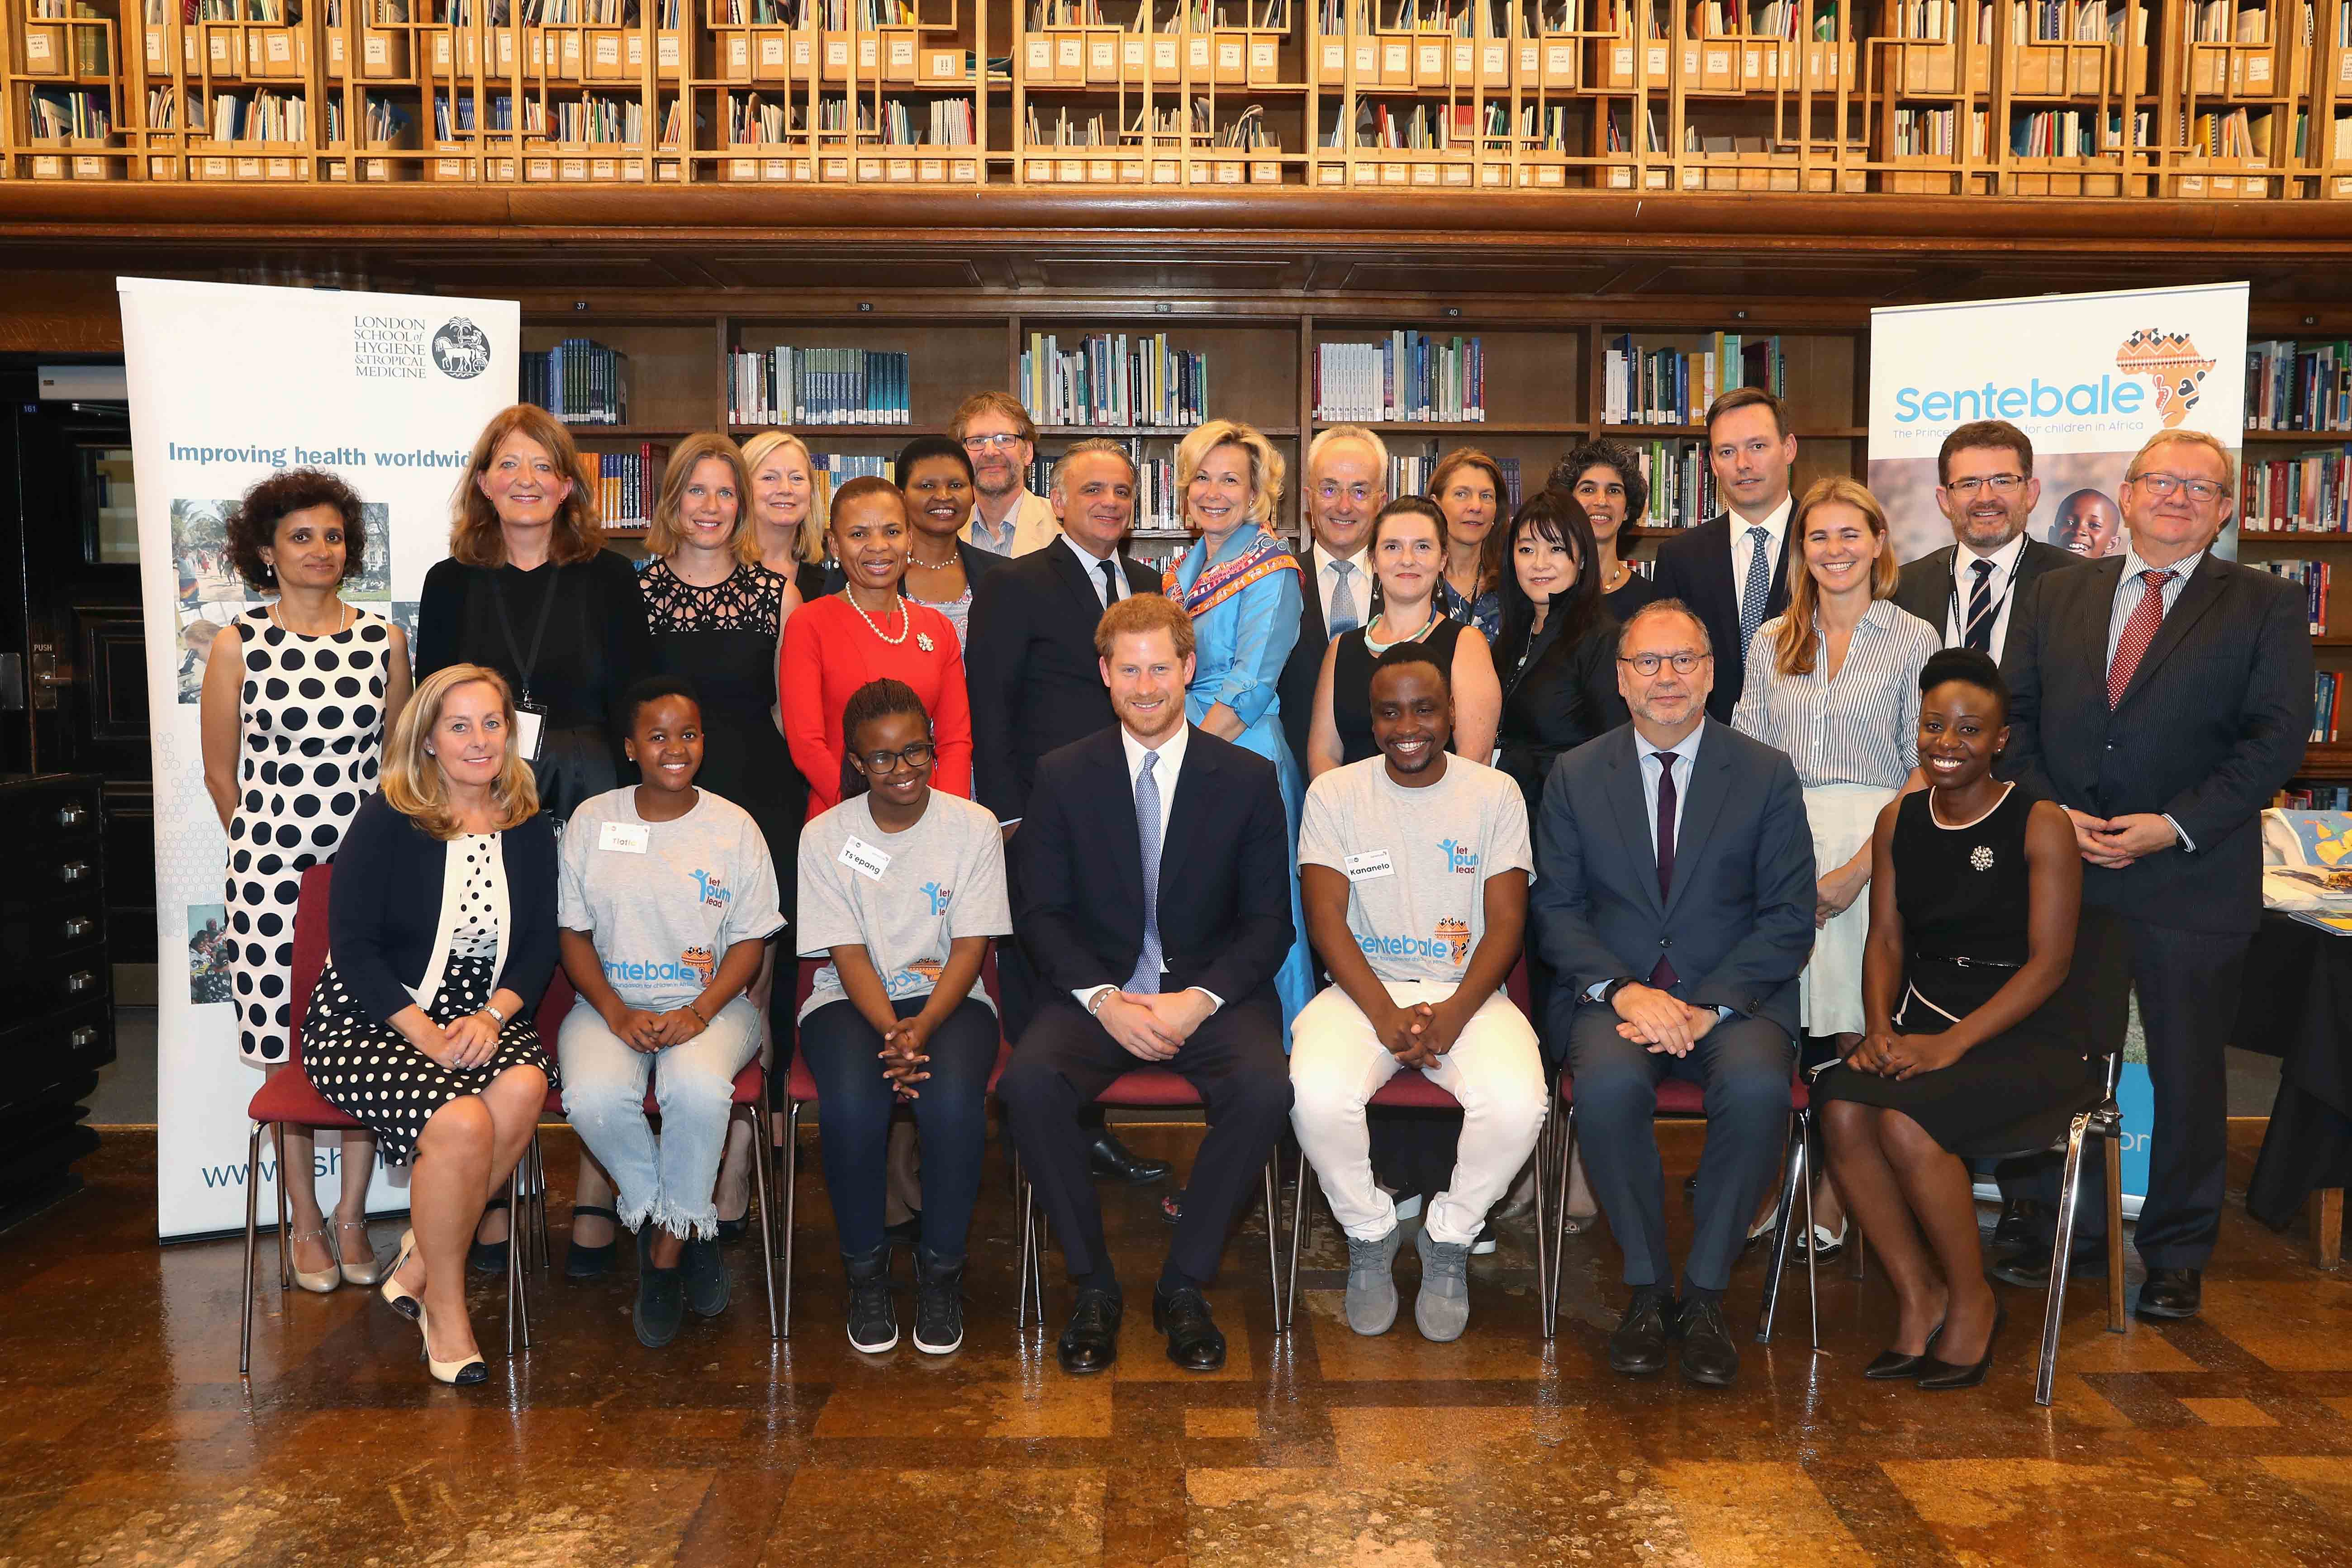 Roundtable attendees with Prince Harry at the London School of Hygiene & Tropical Medicine_Credit Getty Images for Sentebale